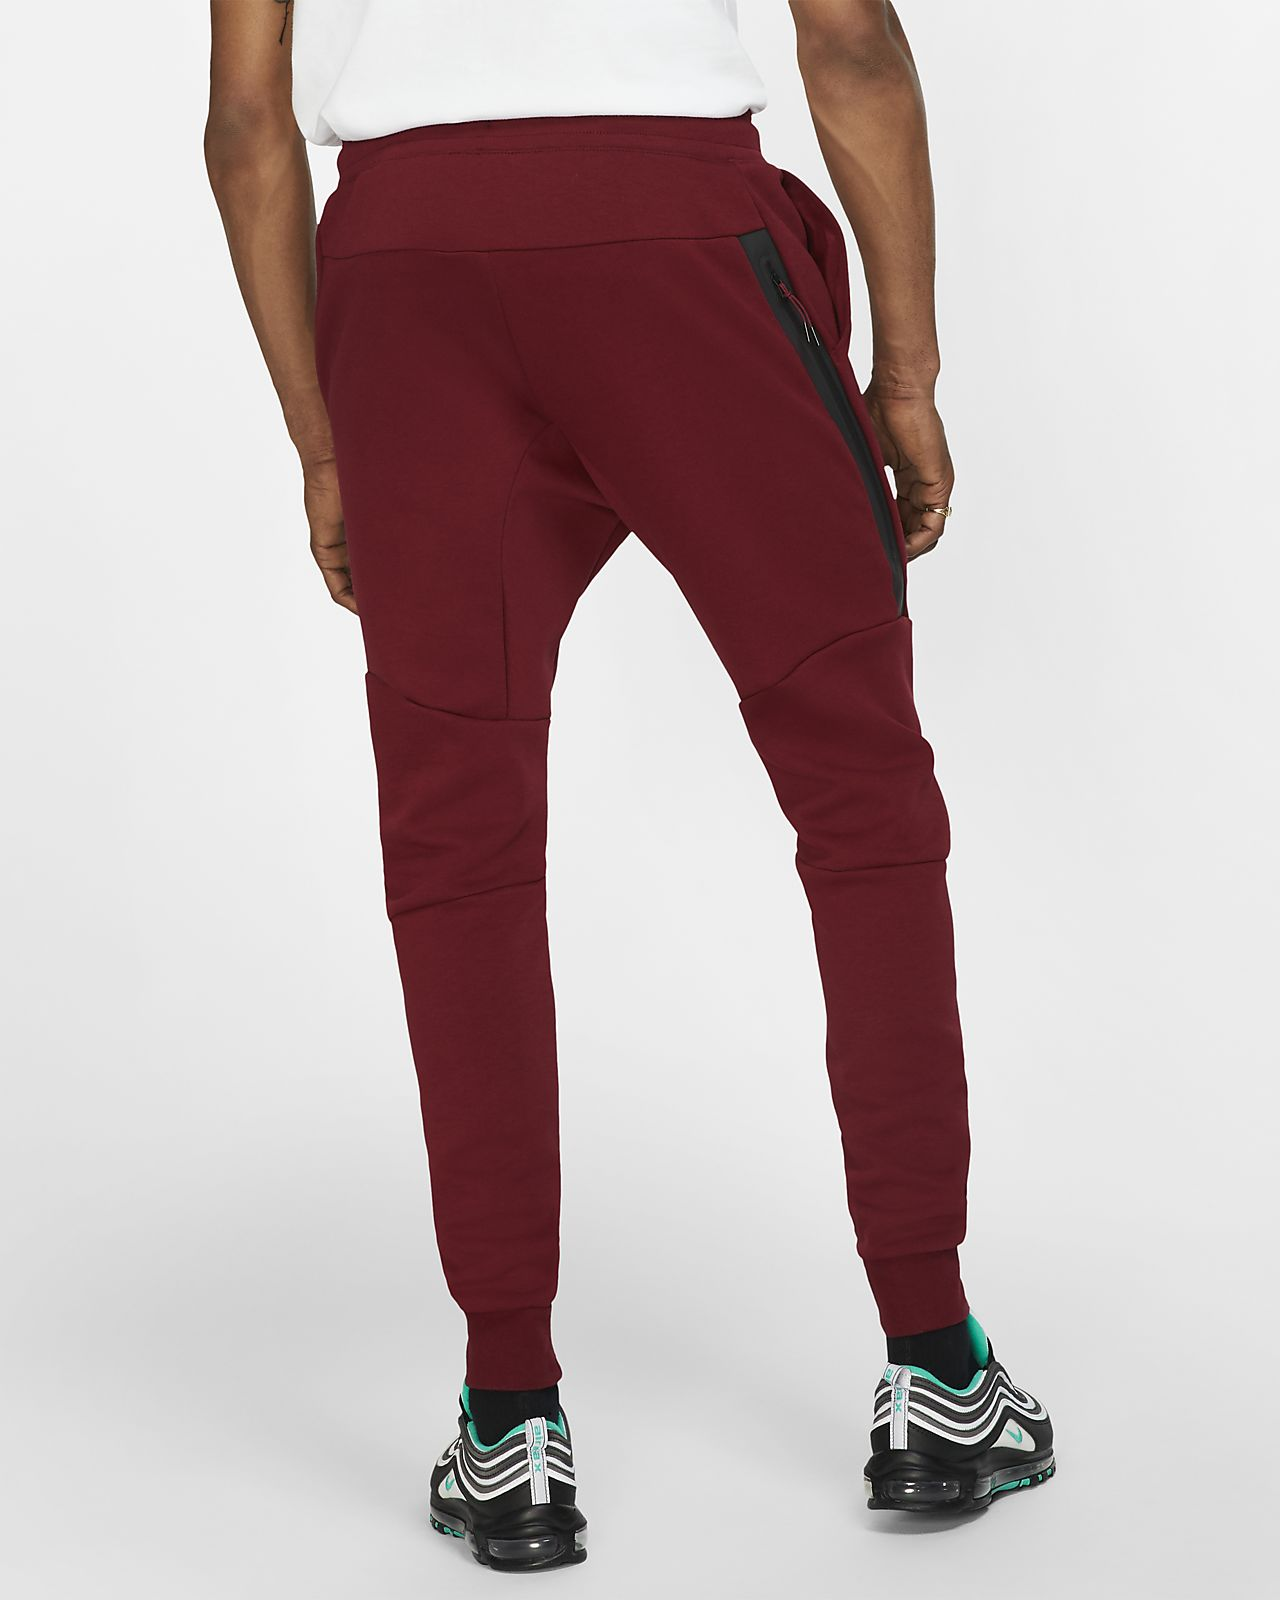 Tech Nike Sportswear Fleece Men's Joggers BxoCQrdeW